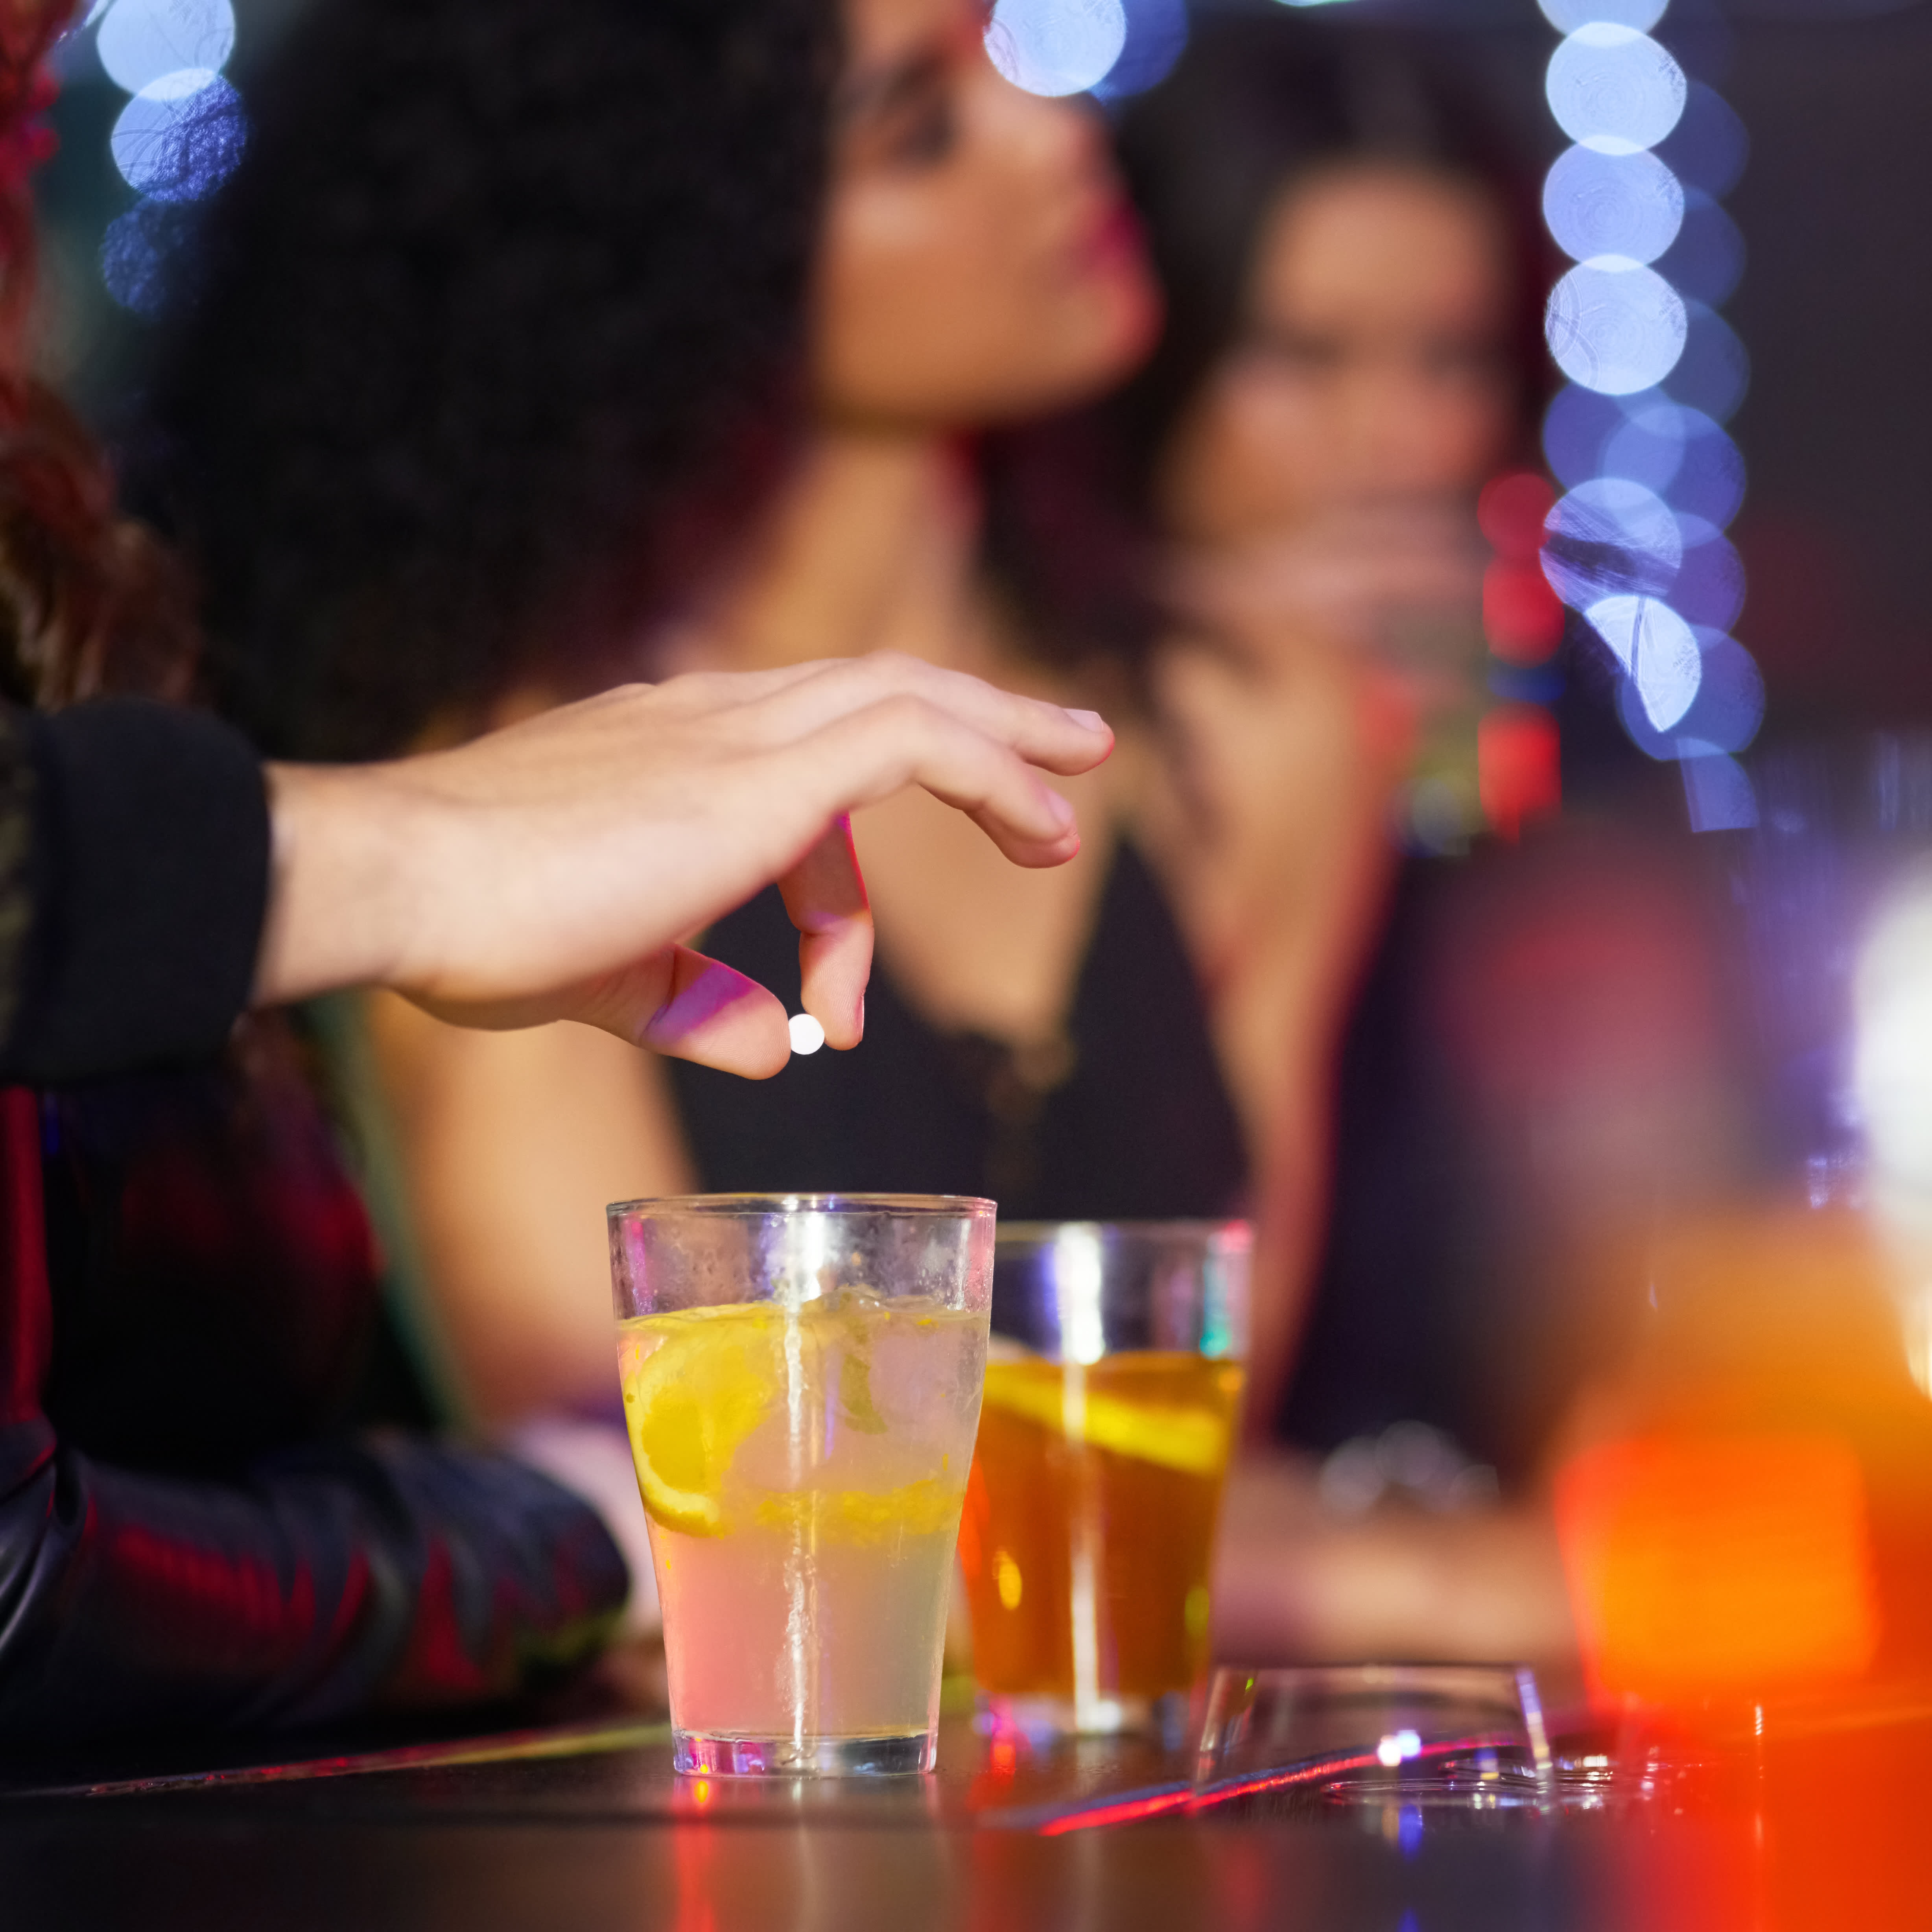 Date rape drug test allows women to discreetly check for